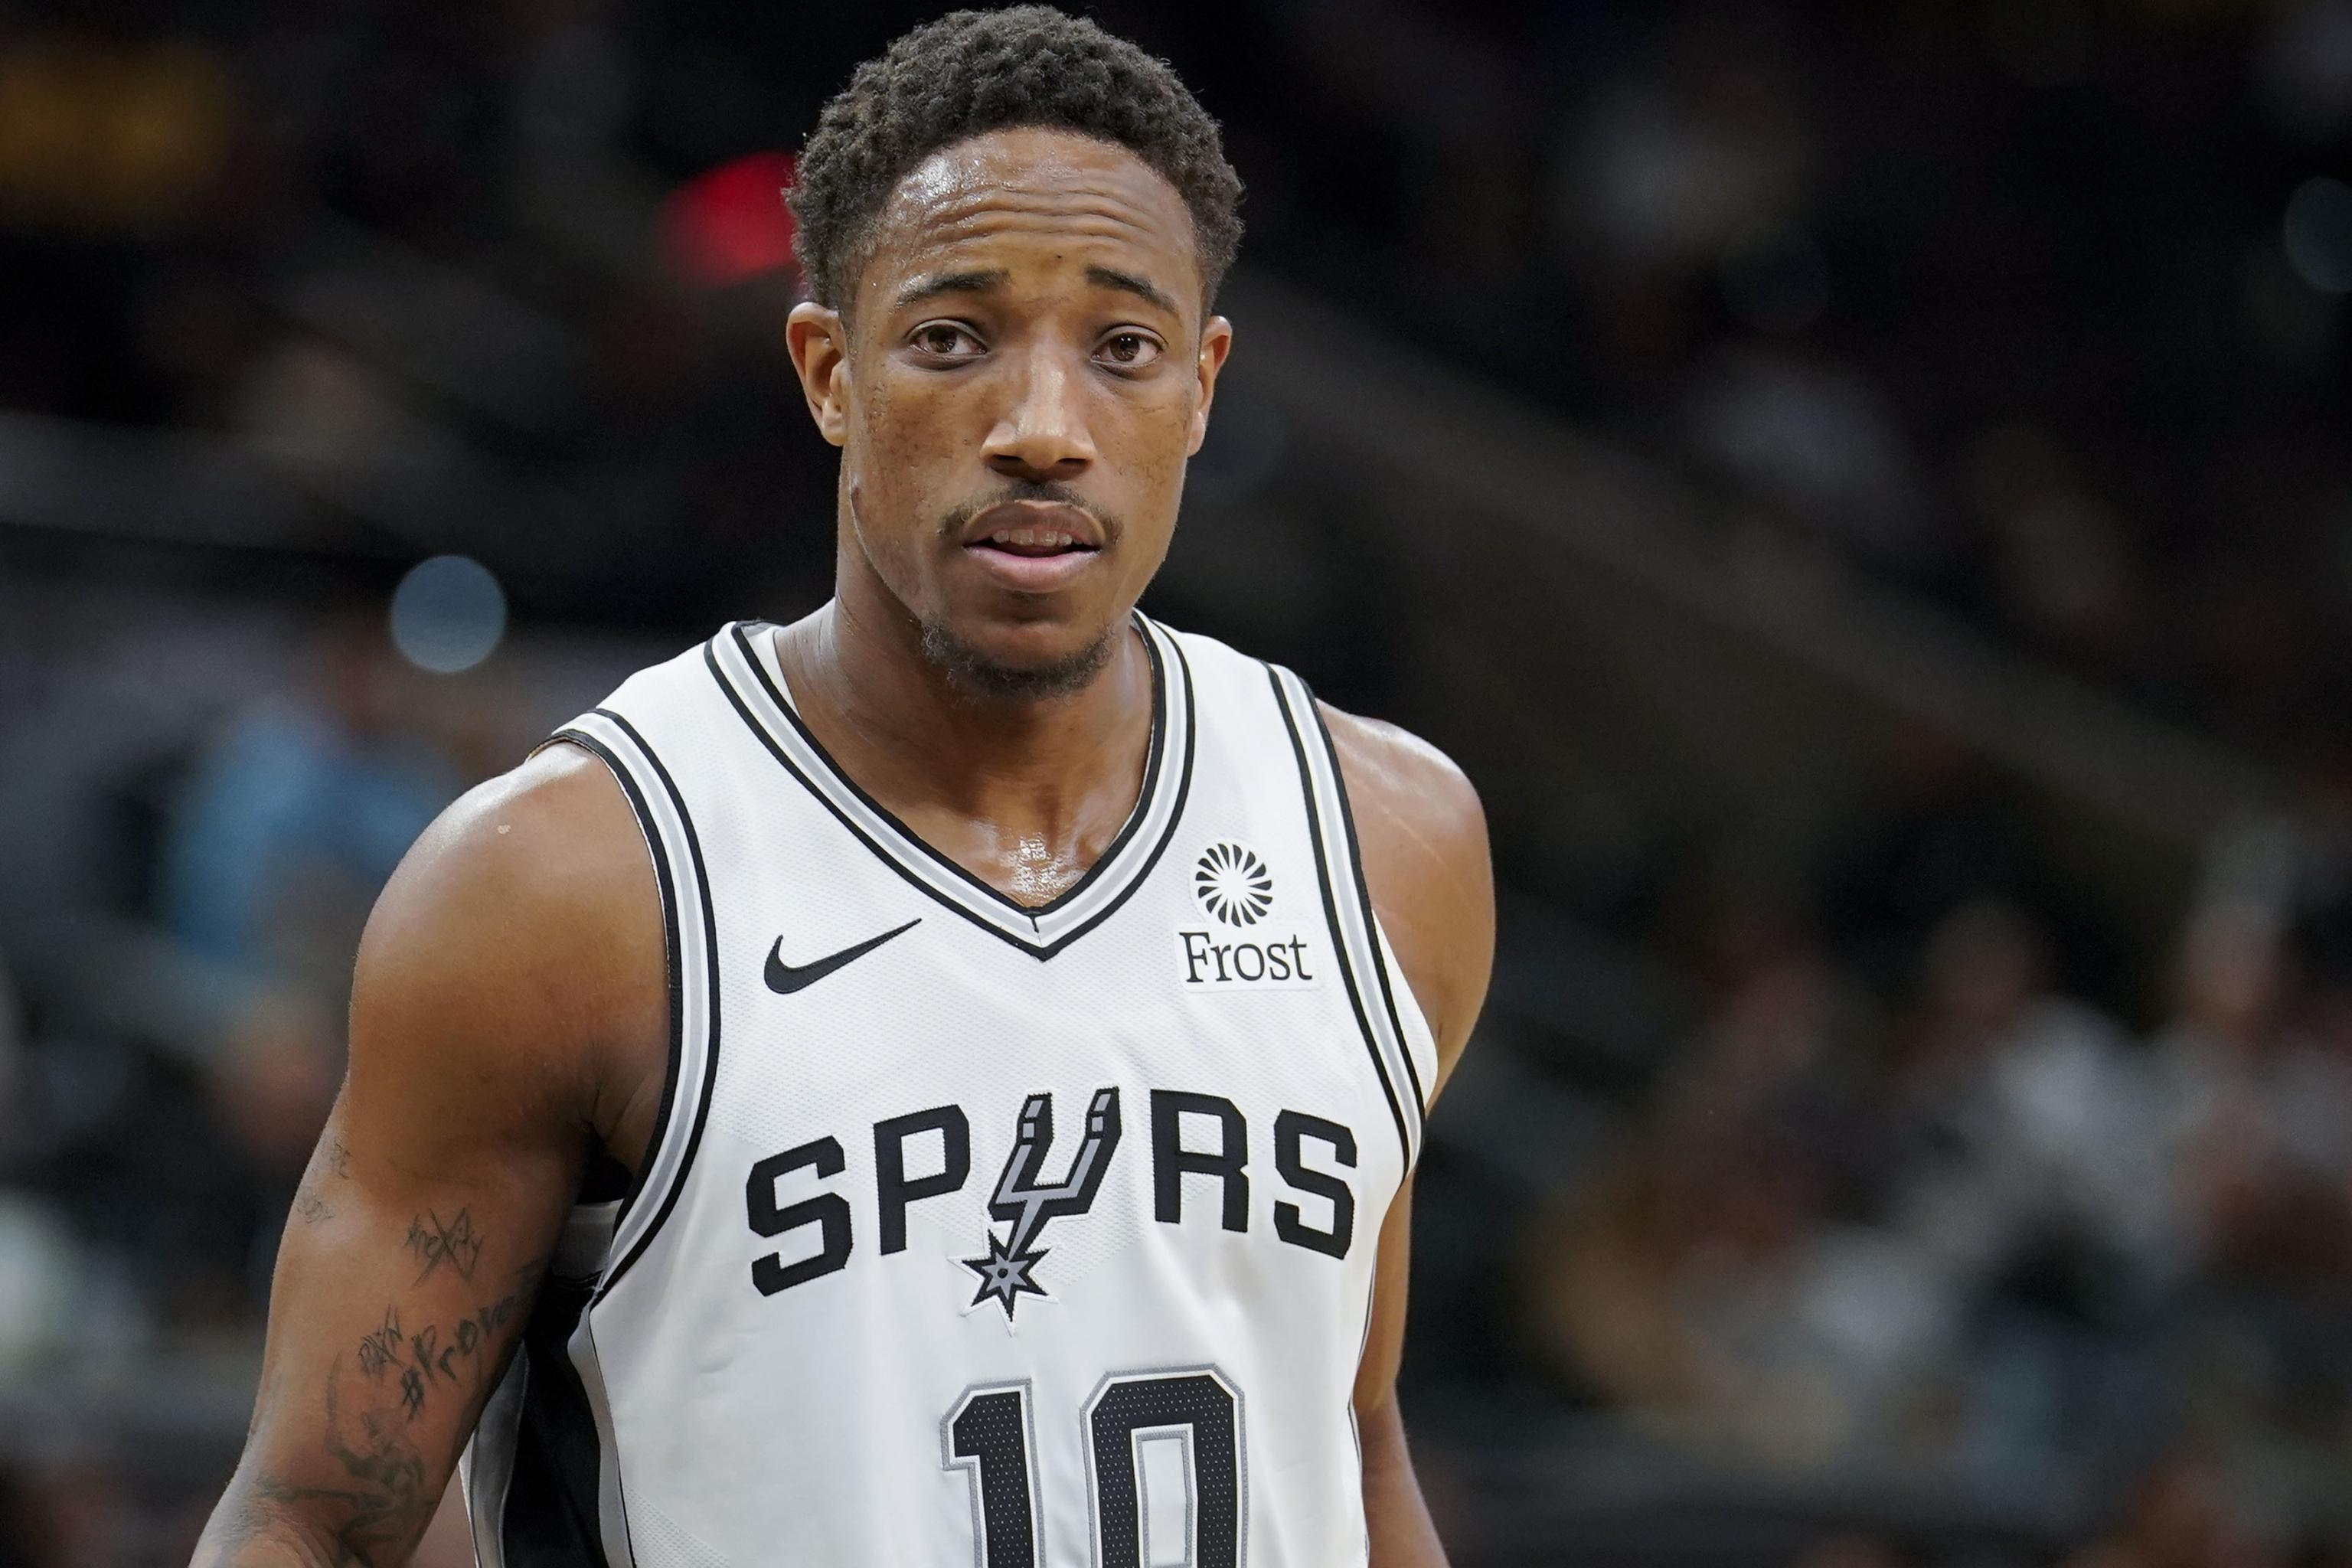 new styles 2b1f8 0983b DeMar DeRozan Was 'Extremely Hurt' After Being Traded to ...